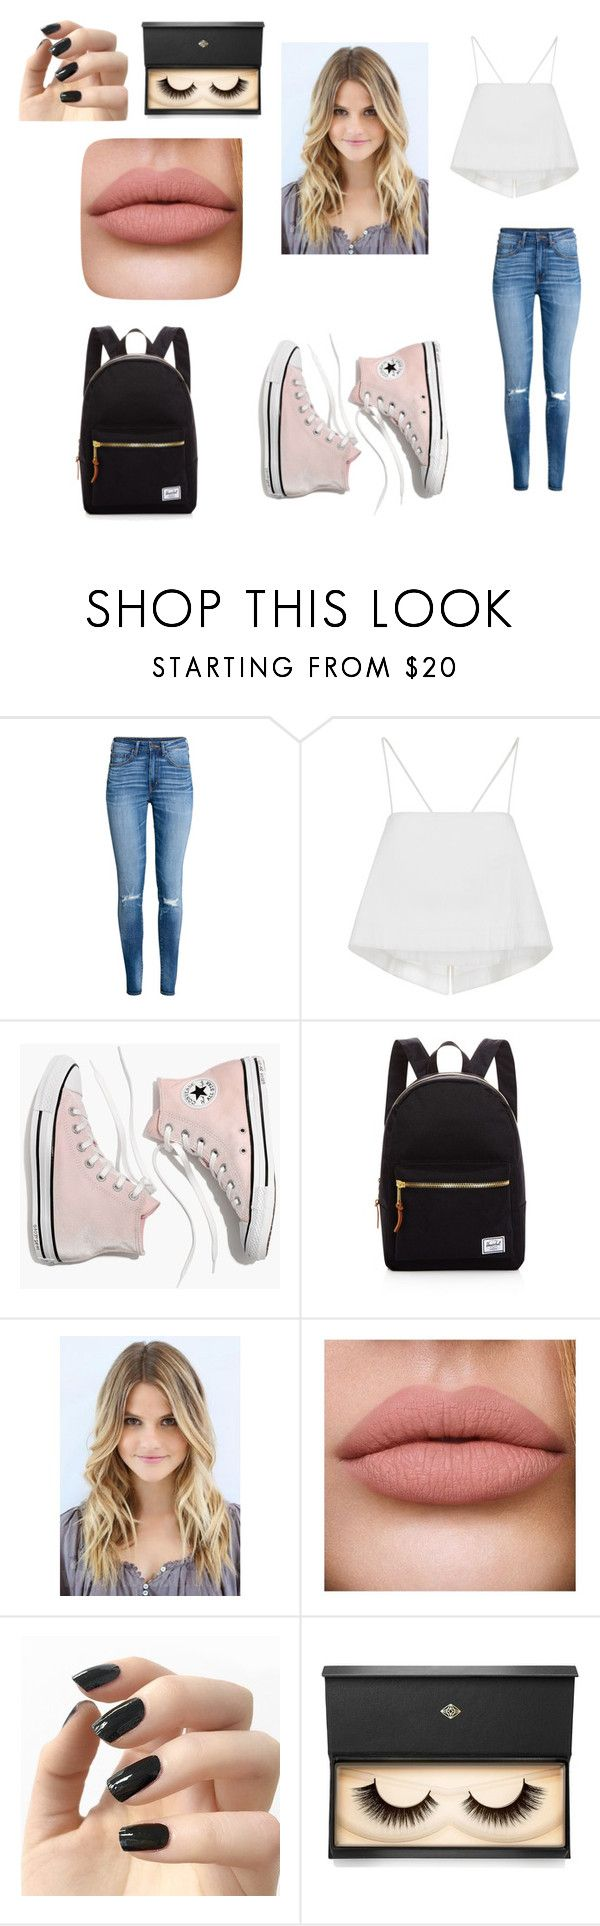 """""""Untitled #8"""" by jannahcantrell on Polyvore featuring H&M, A.L.C., Madewell, Herschel Supply Co., Incoco and Lash Star Beauty"""